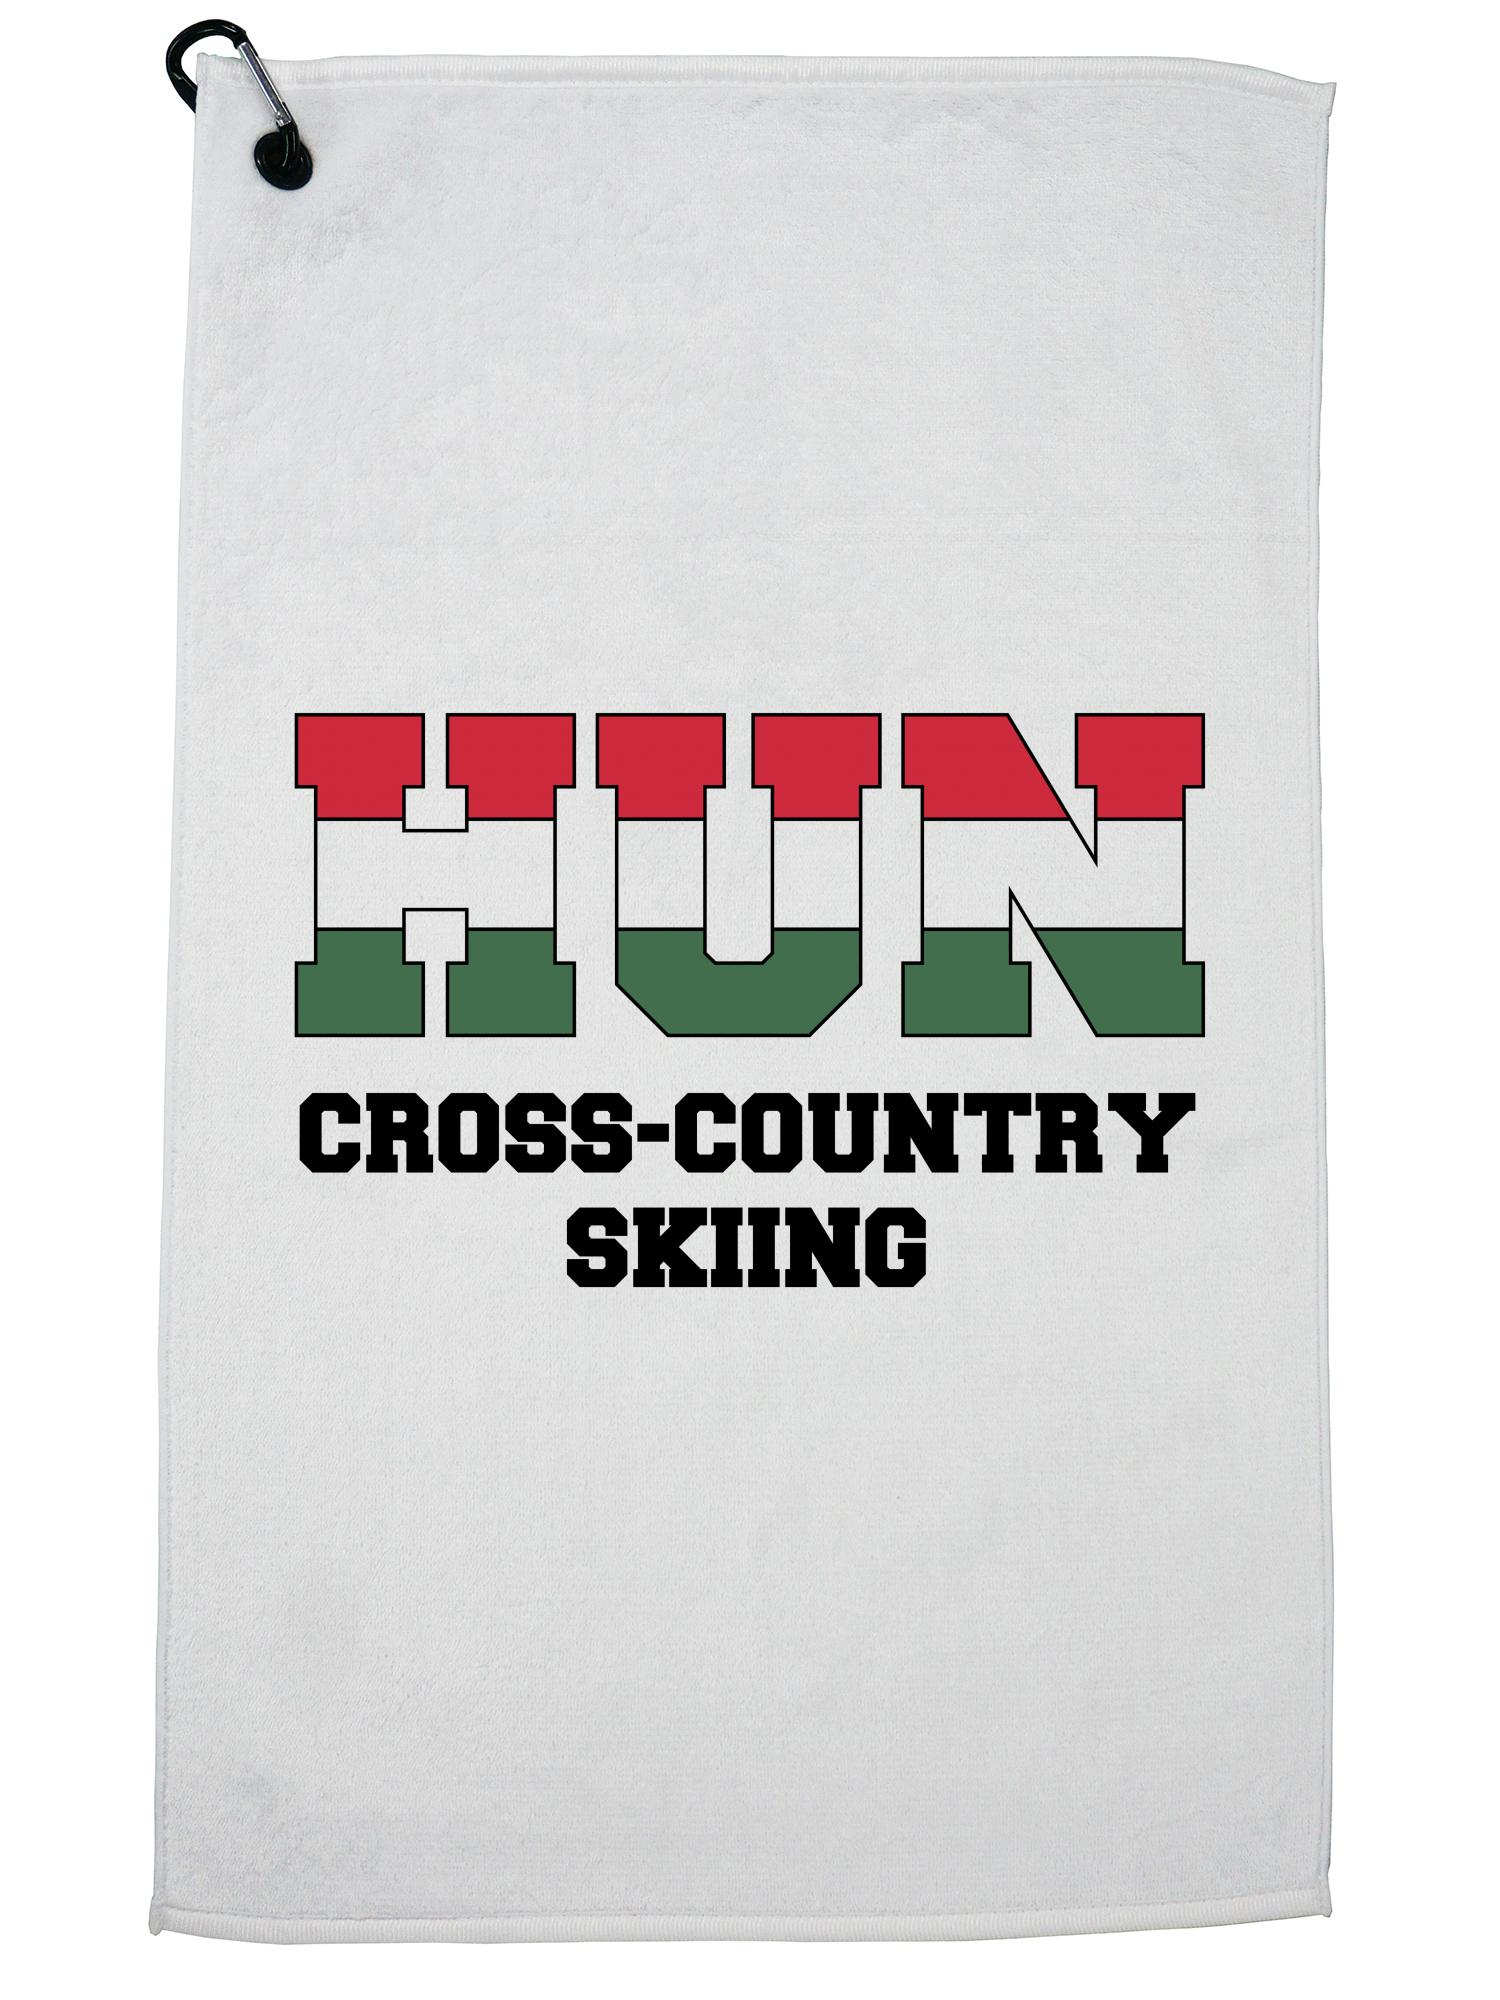 Hungarian Cross-Country Skiing Winter Olympic HUN Flag Golf Towel with Carabiner Clip by Hollywood Thread